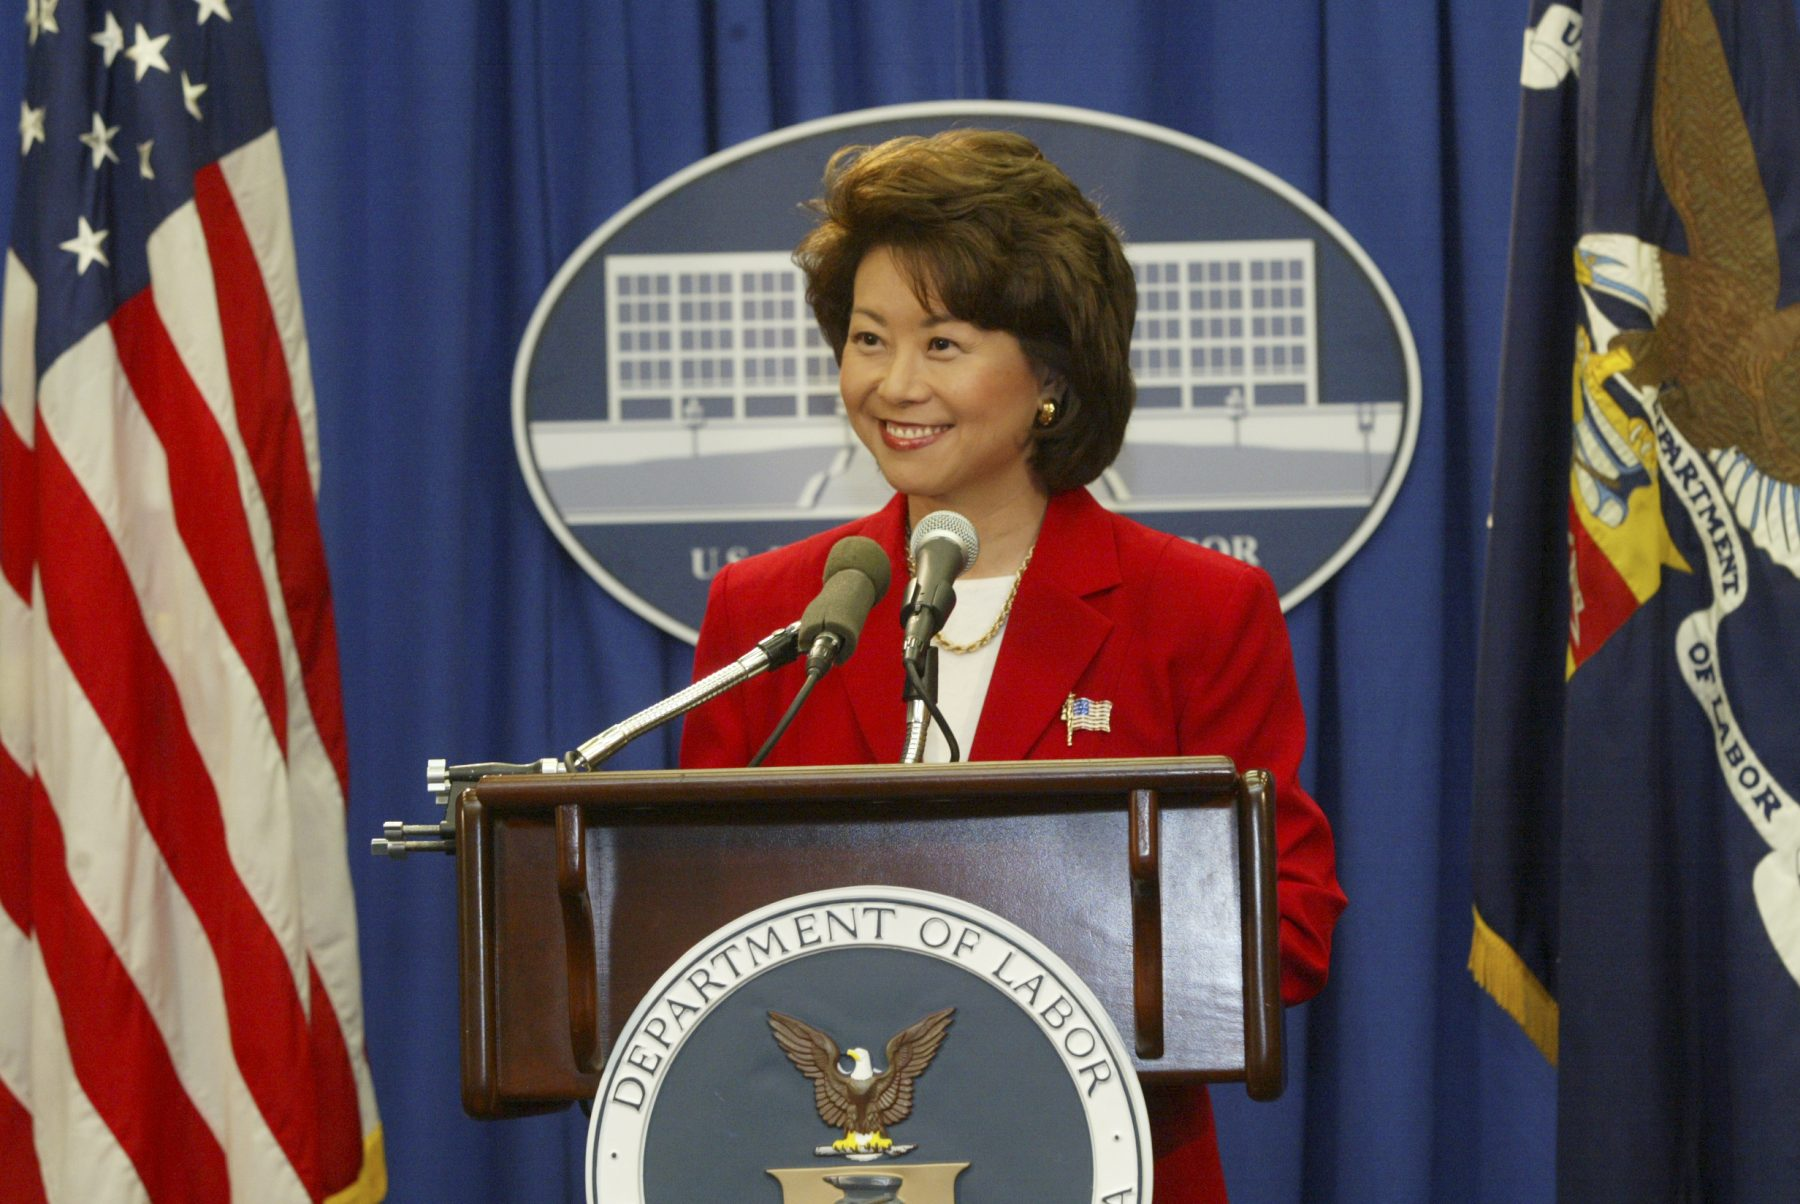 https://www.elainechao.com/wp-content/uploads/2020/12/4.-21st-Century-Workforce-1.jpg